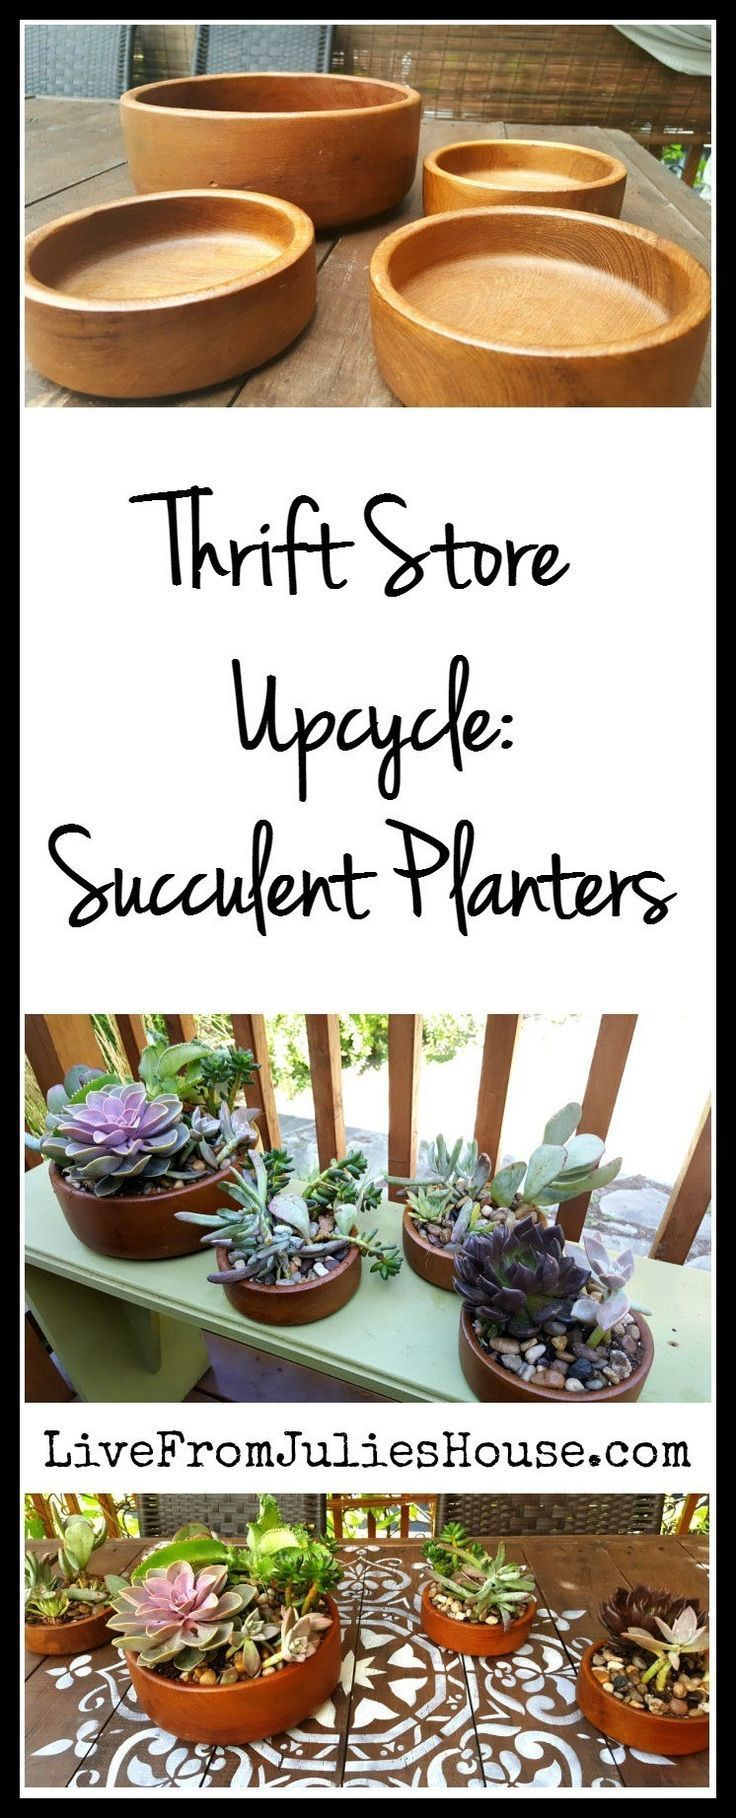 Thrift Store Upcycle: Succulent planters -  Thrift Store Upcycle: Succulent planters  #pflanzgefa # juicy #store #thrift #upcycle Check more at - #Diyfurniturehacks #Diyfurniturerustic #Planters #Store #Succulent #Thrift #thriftstoreDiyfurniture #Upcycle